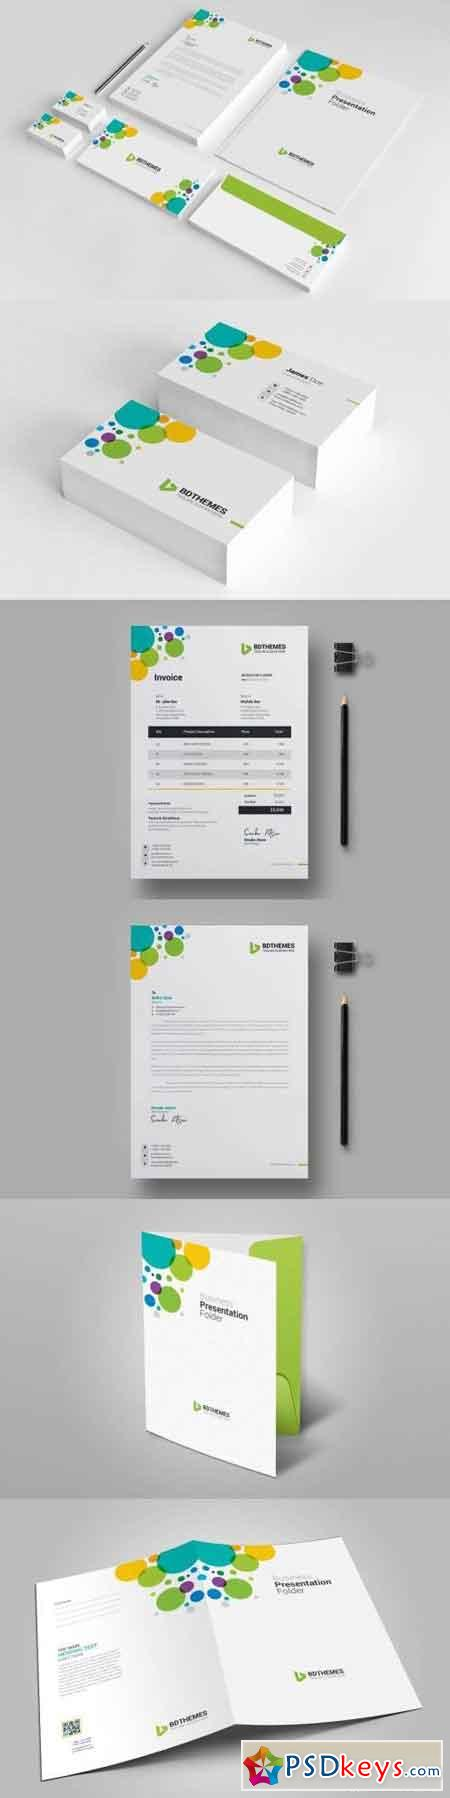 Business Stationery Template 08